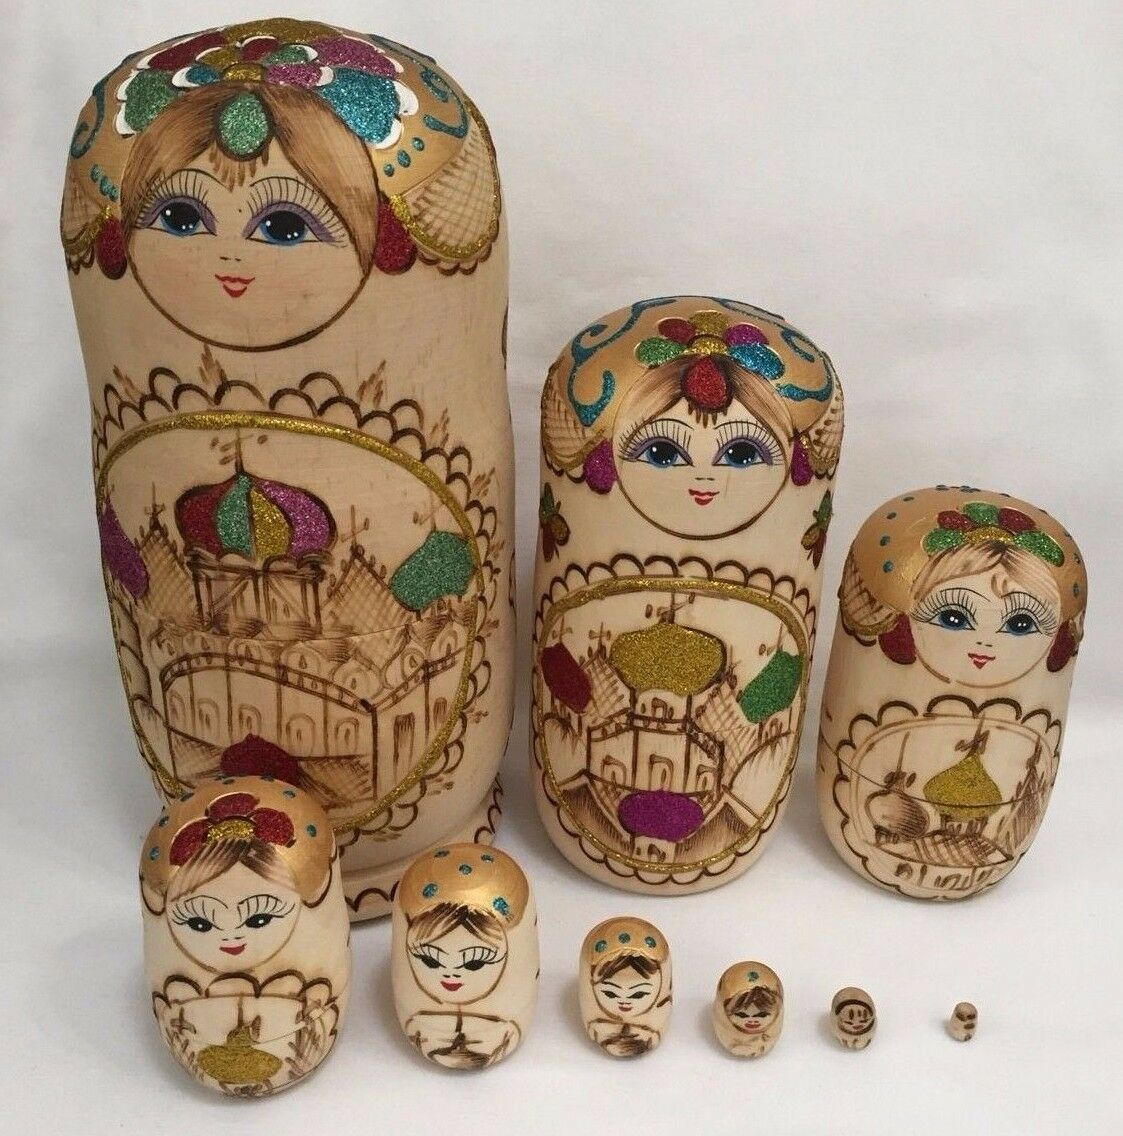 Russian Matryoshka Nesting Dolls, HUGE 10.5 , Pyrography, Set of 9 Dolls (RF276)